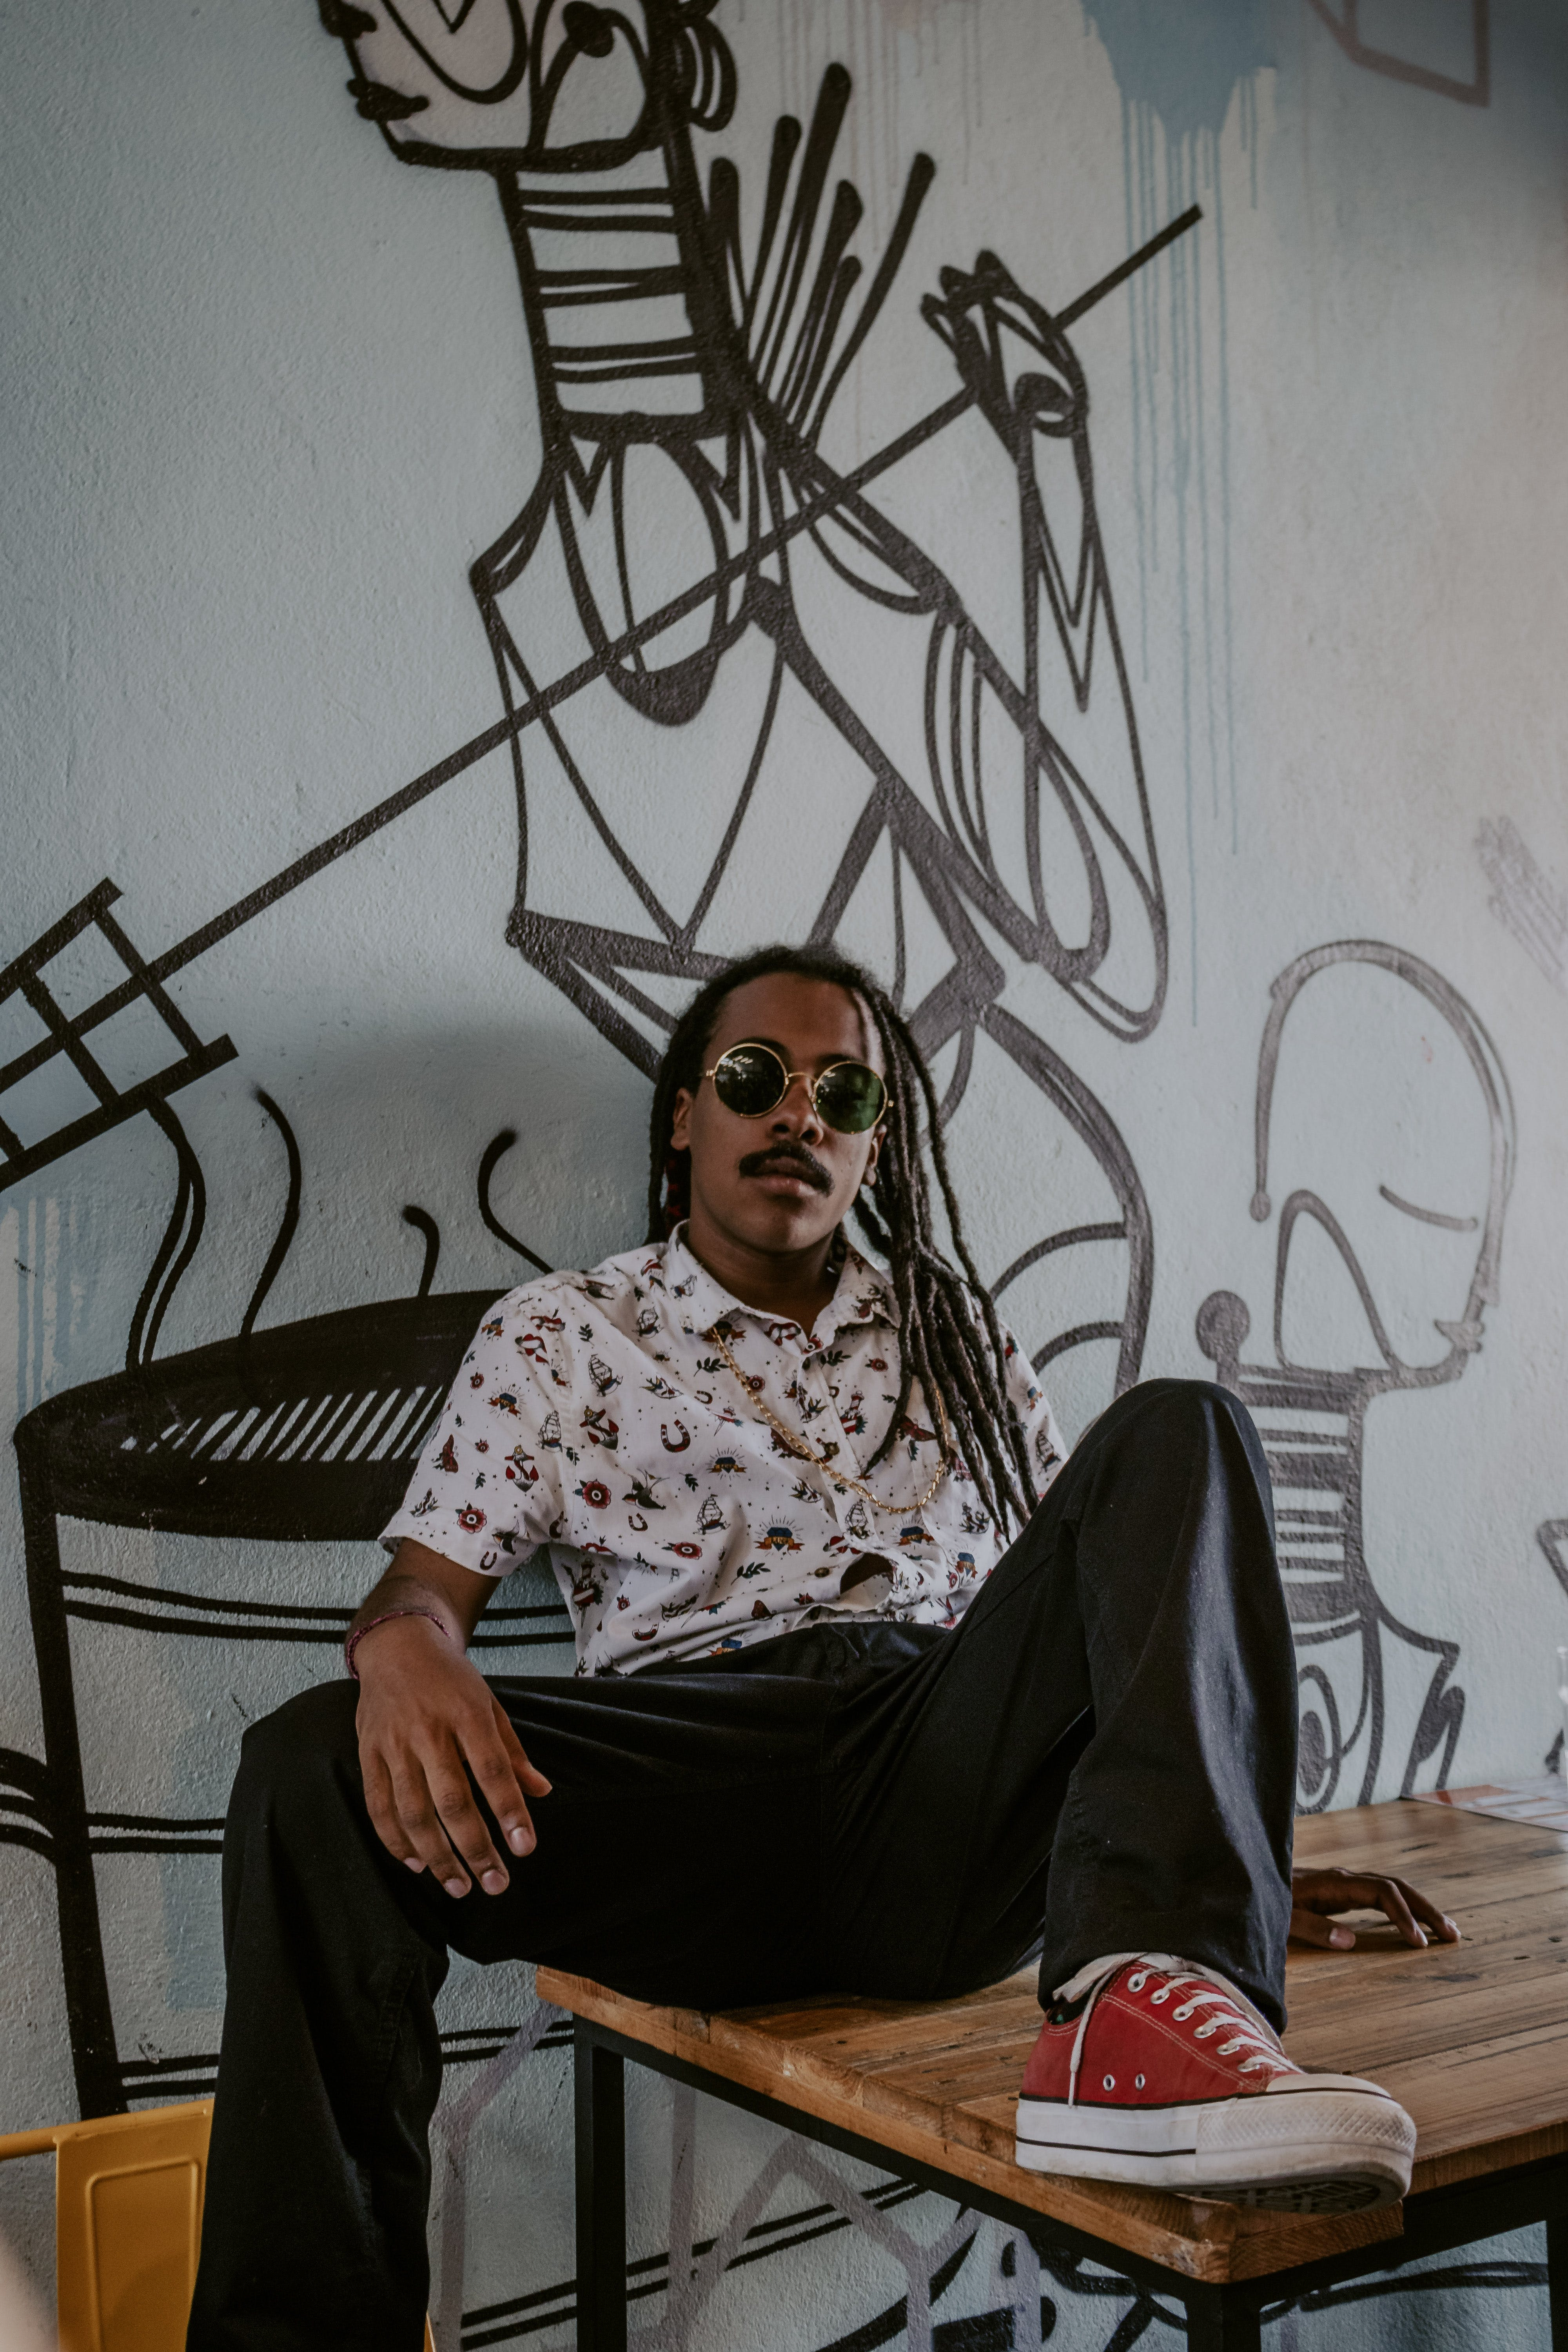 Man in White Shirt and Black Pants Sitting on Table While Leaning on Wall